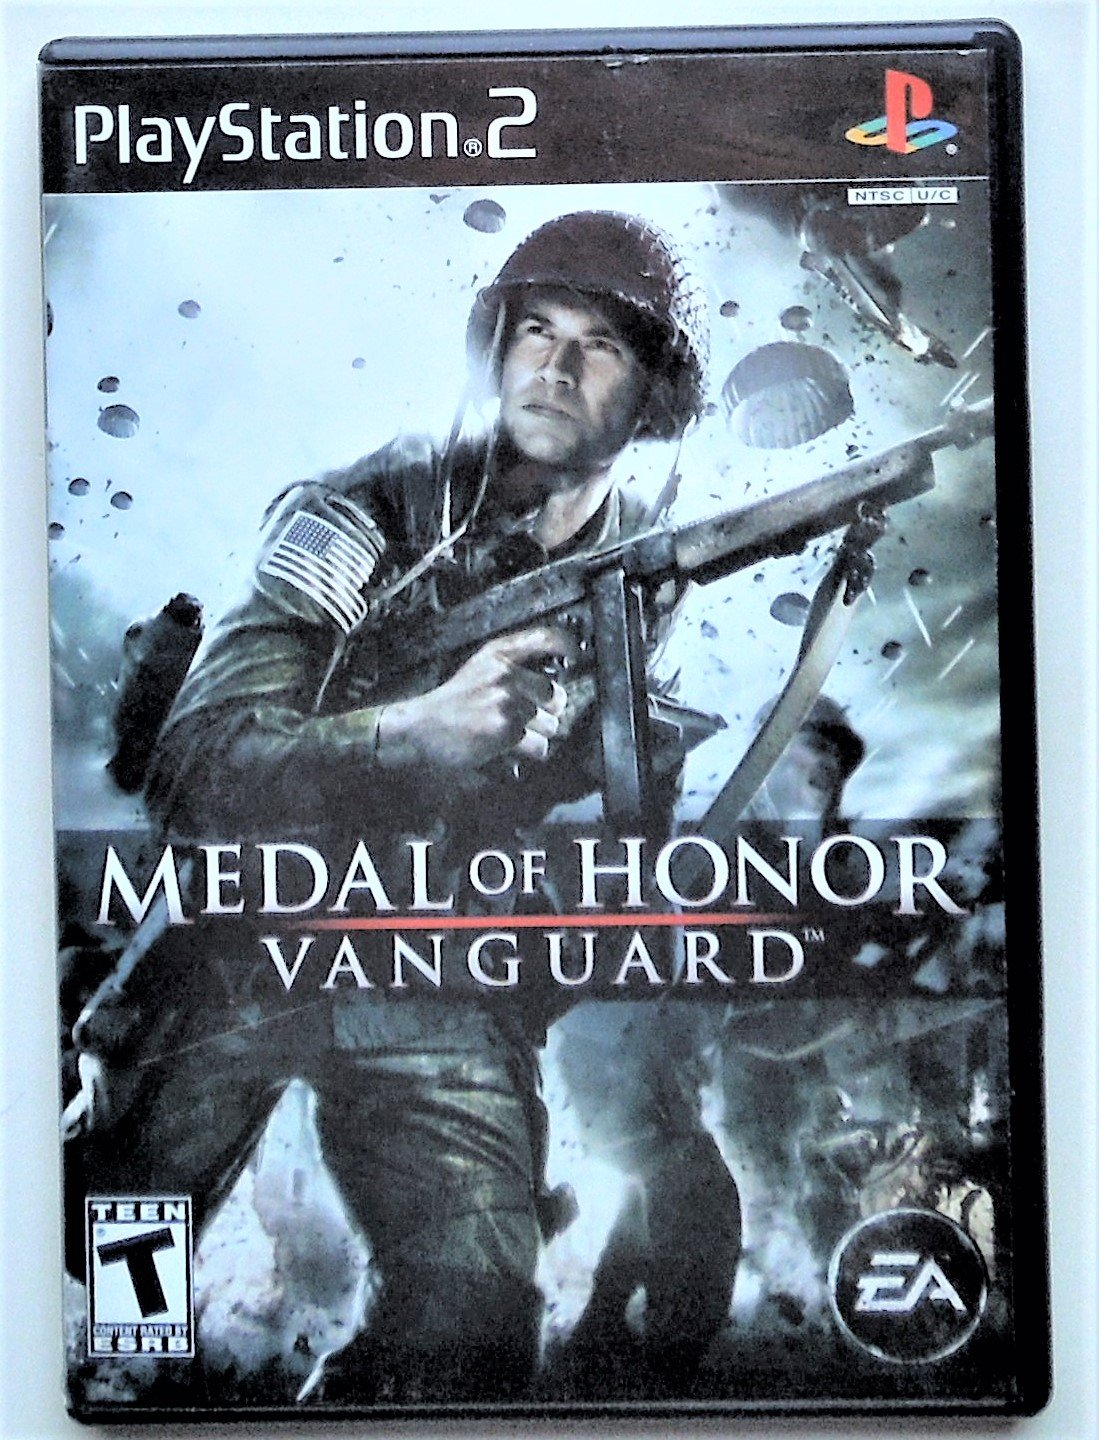 2007 Electronic Arts Medal Of Honor Vanguard For Playstation 2 Game Systems